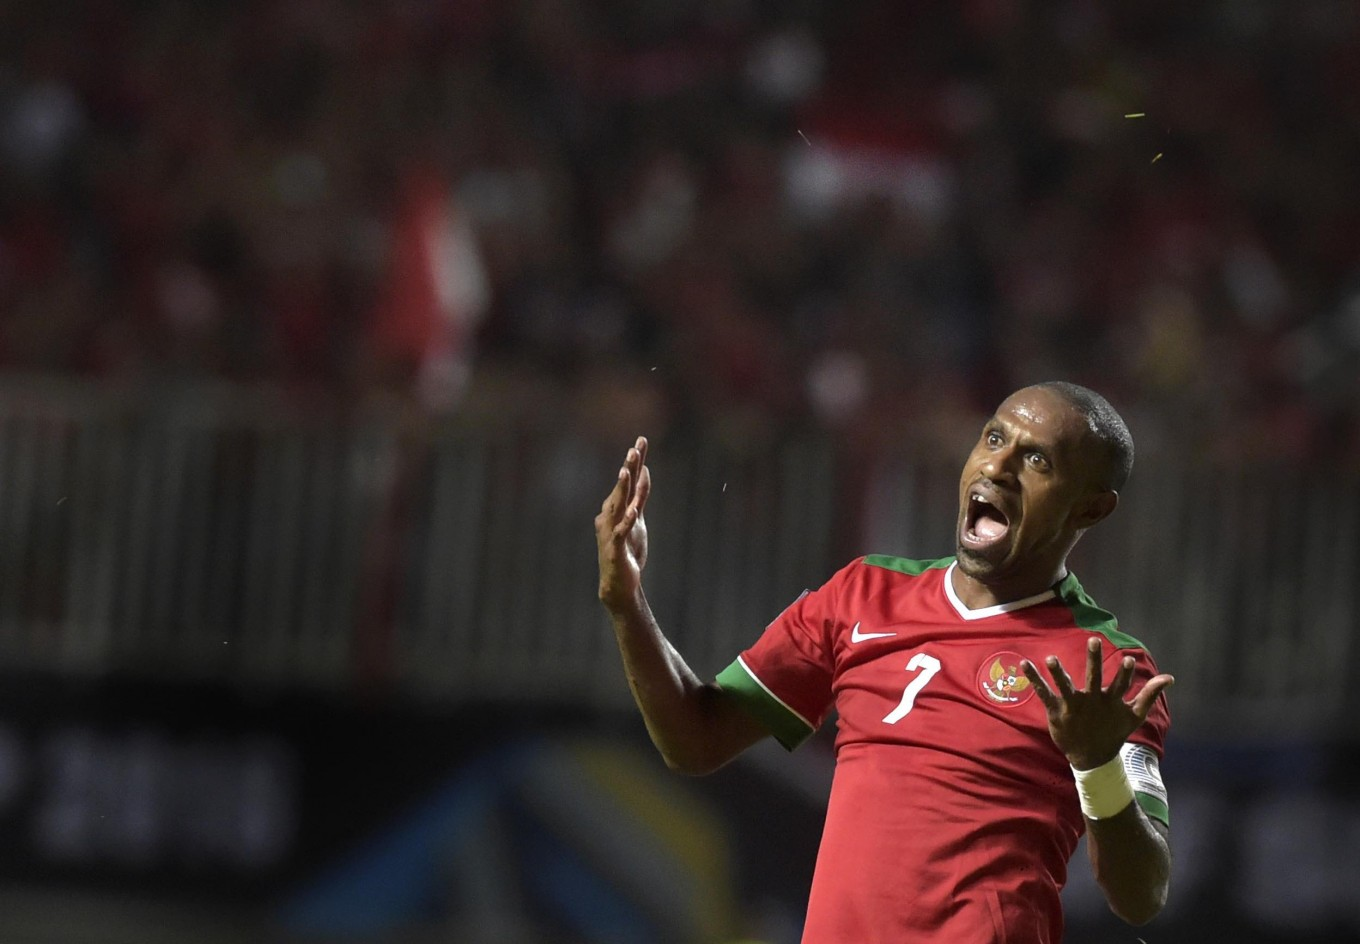 Indonesia keeps hopes high after 2-1 win over Vietnam